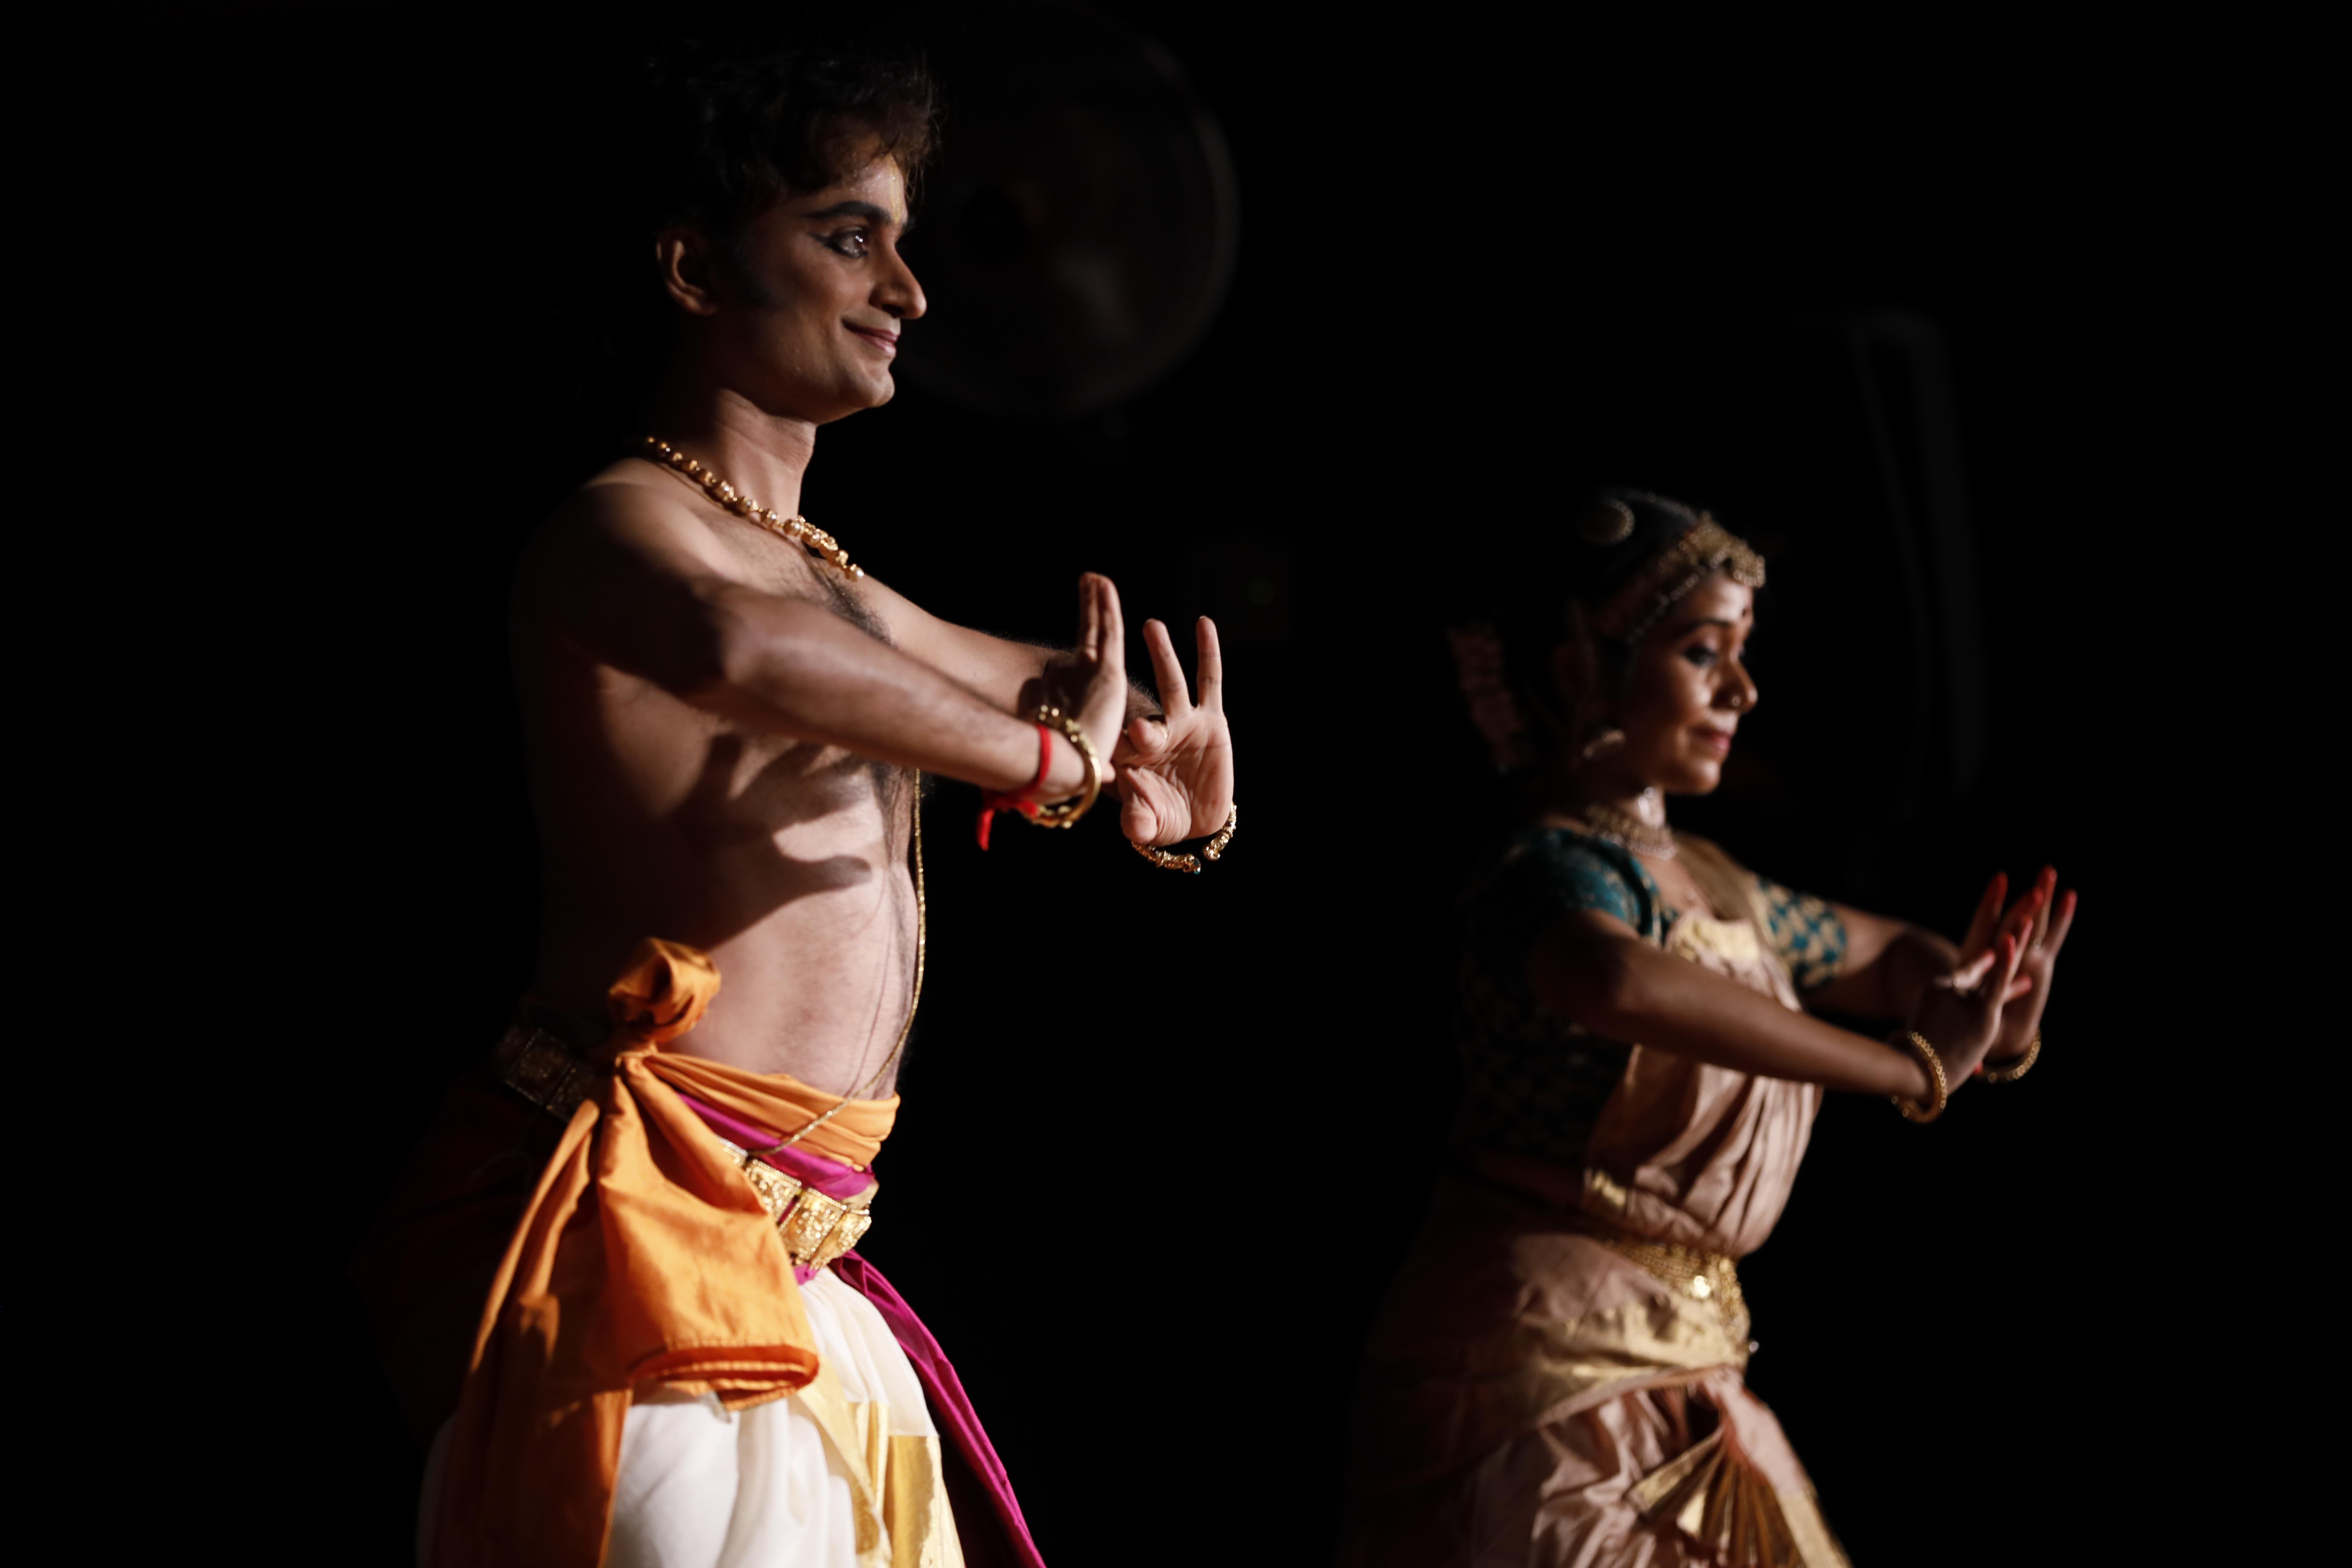 Performances included those by Gurus, Alumni and Students of SIFAS at Deepavali Sangamam 2020. Photo Courtesy: SIFAS